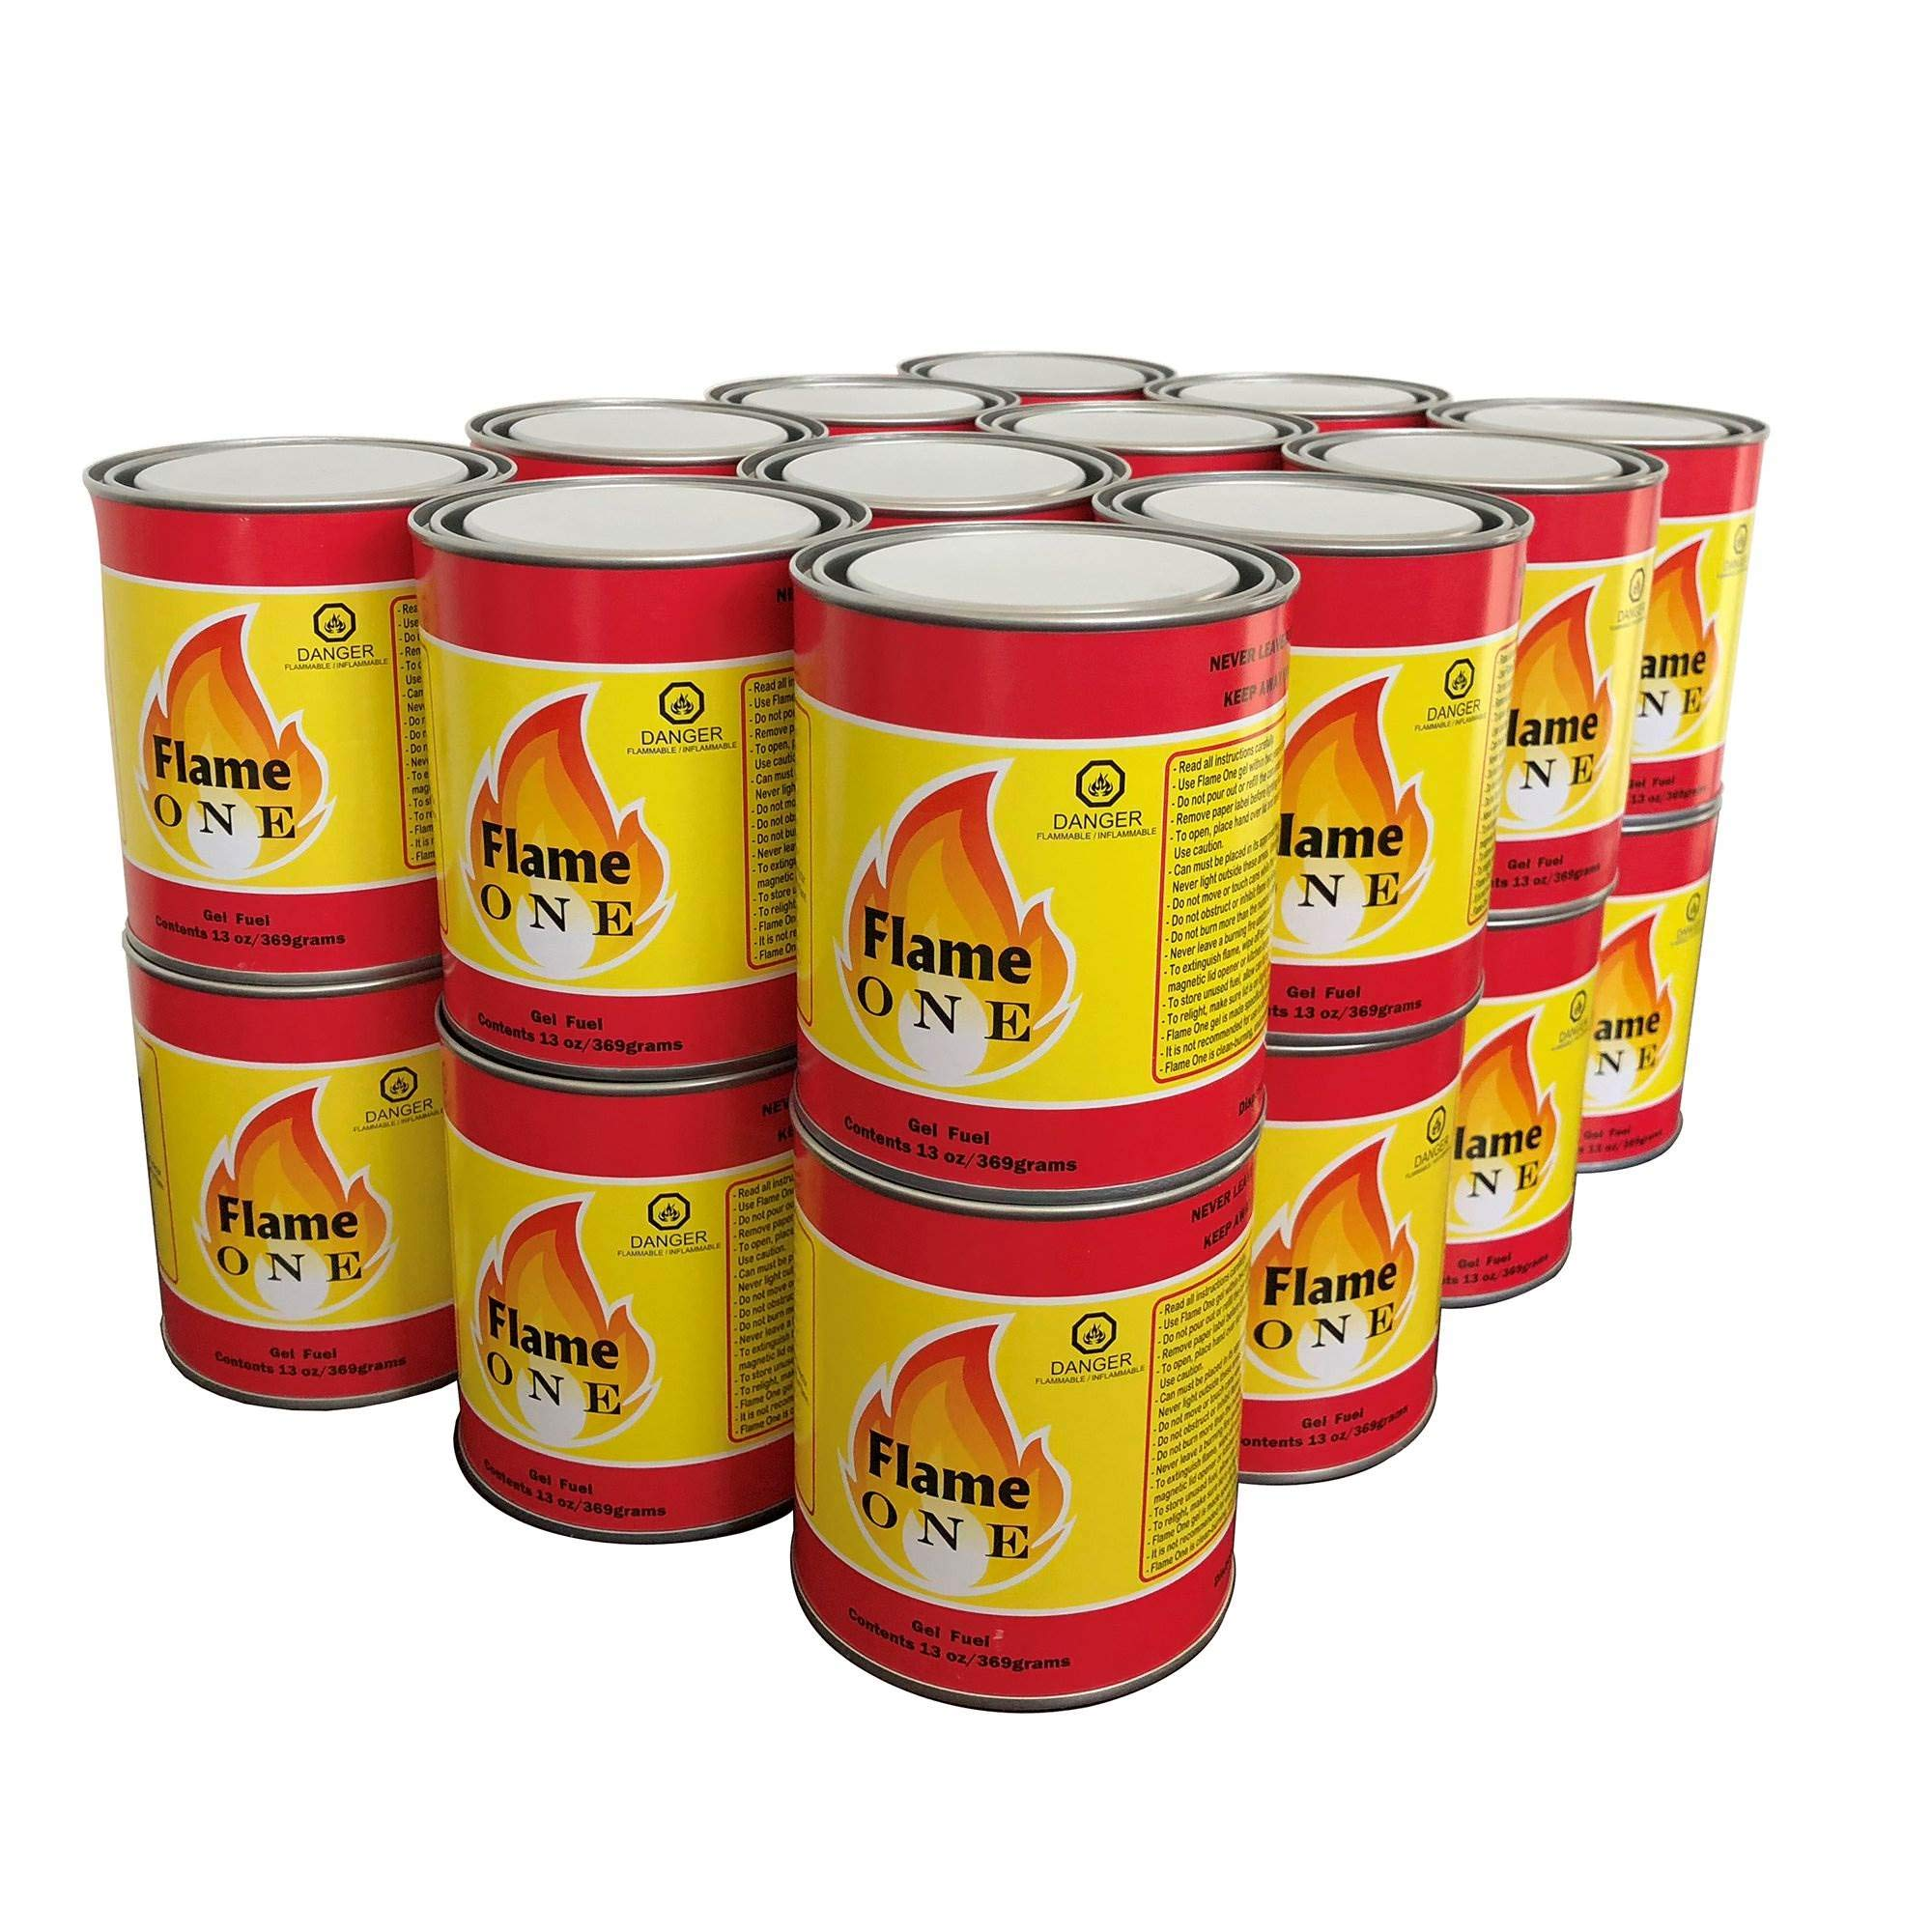 Flame One Indoor or Outdoor Premium Gel Fireplace Fuel in 13 Oz Cans (24 Pack) by Flame One